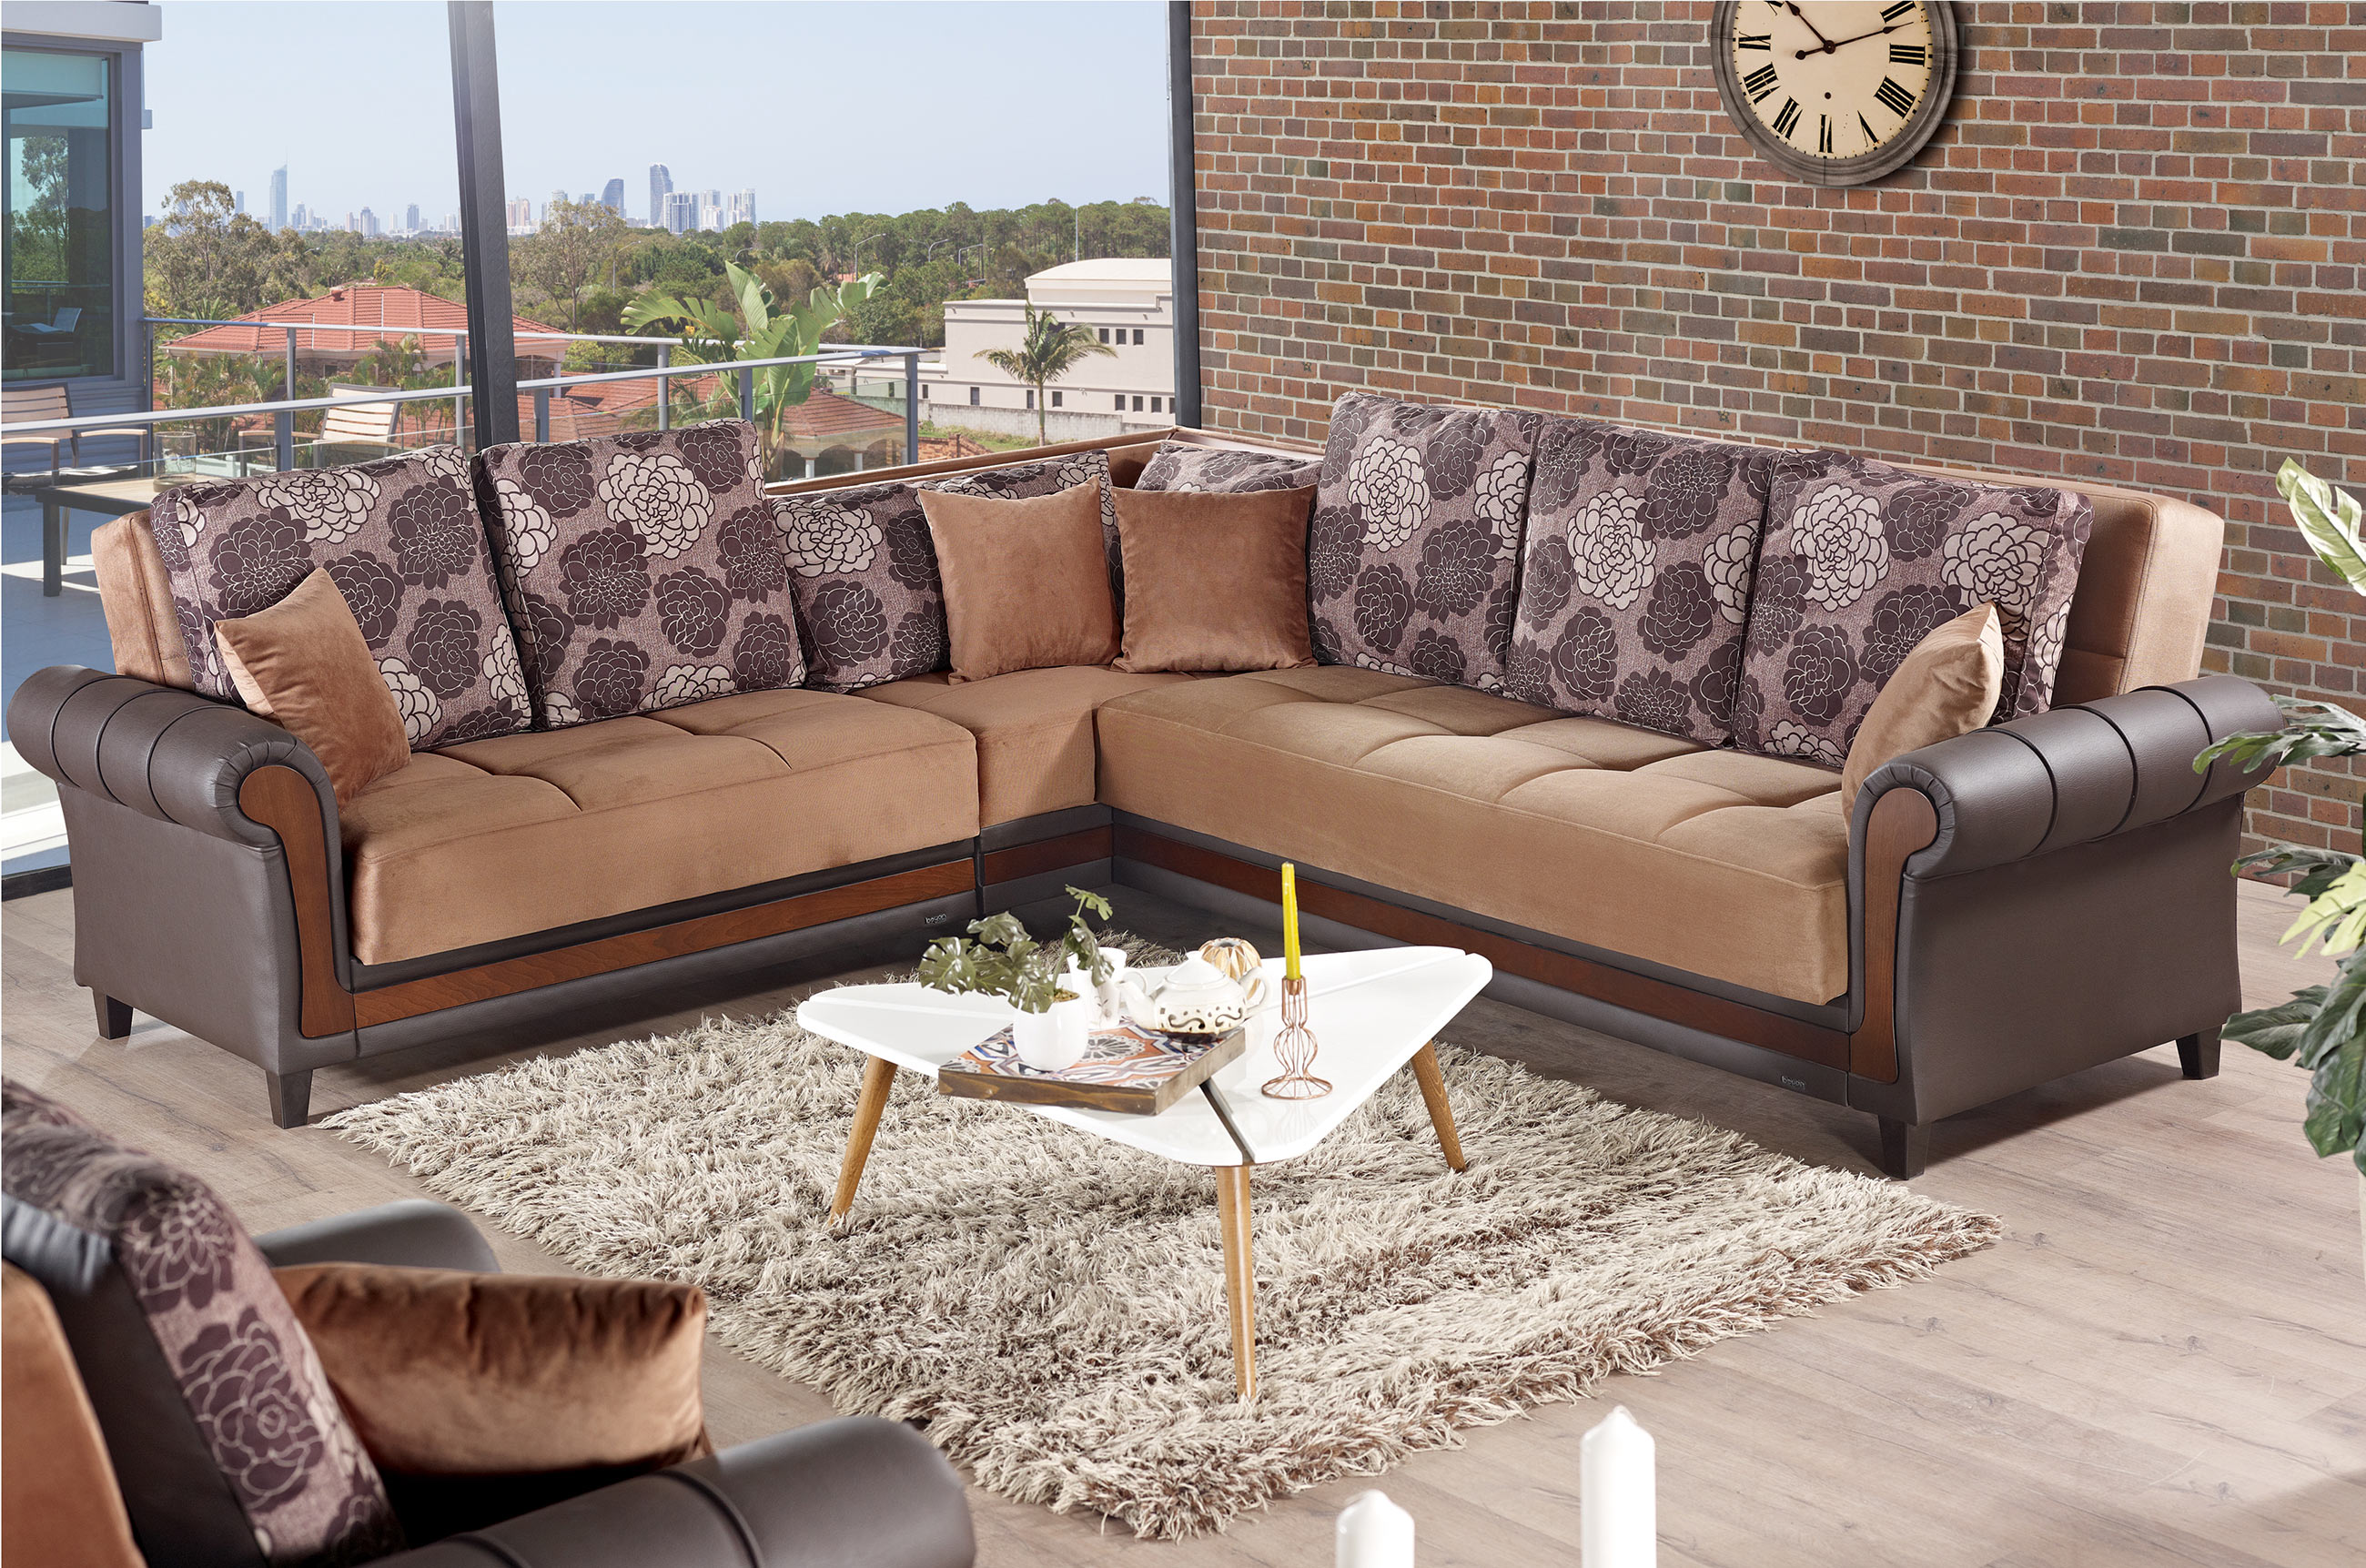 Idaho brown fabric sectional sofa by empire furniture usa for Divan furniture usa